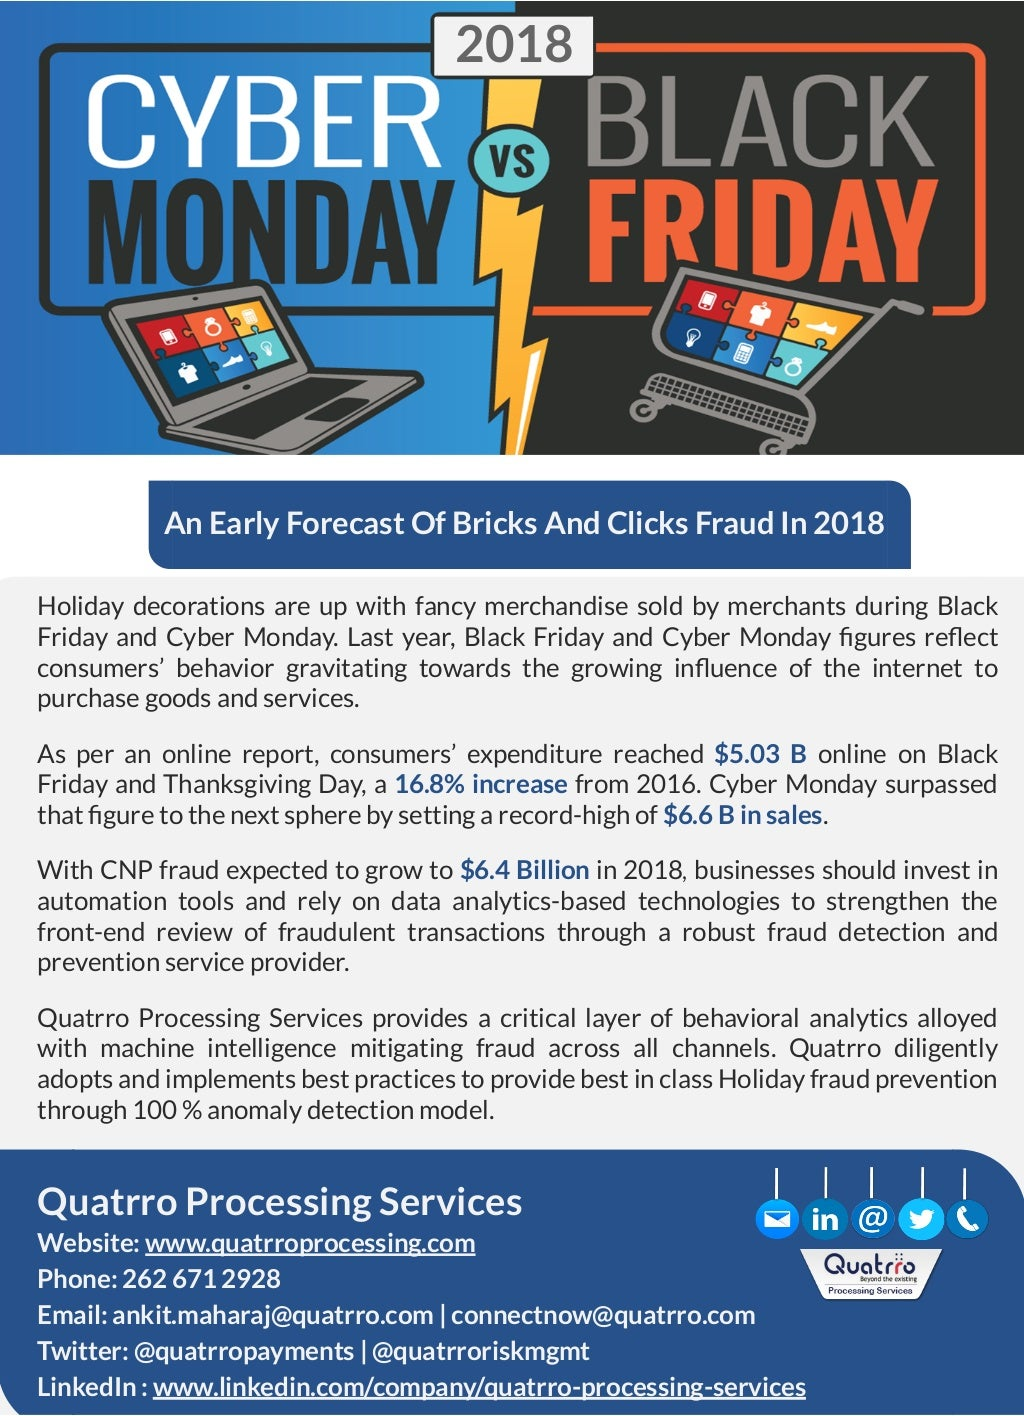 An Early Forecast of Bricks and Clicks Fraud in 2018